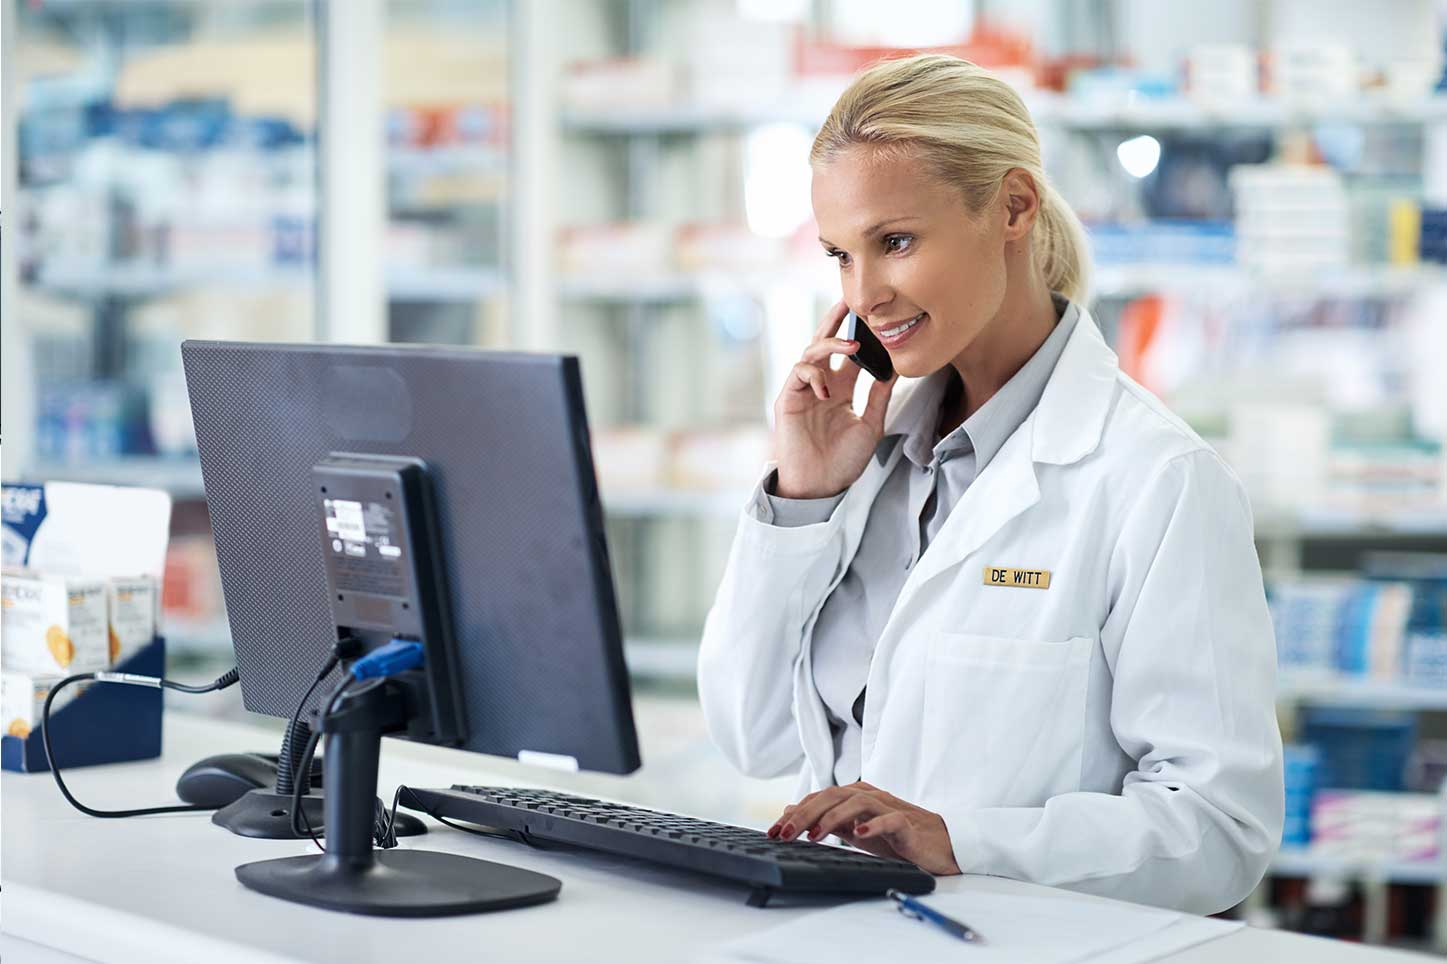 pharmacist-looking-up-information